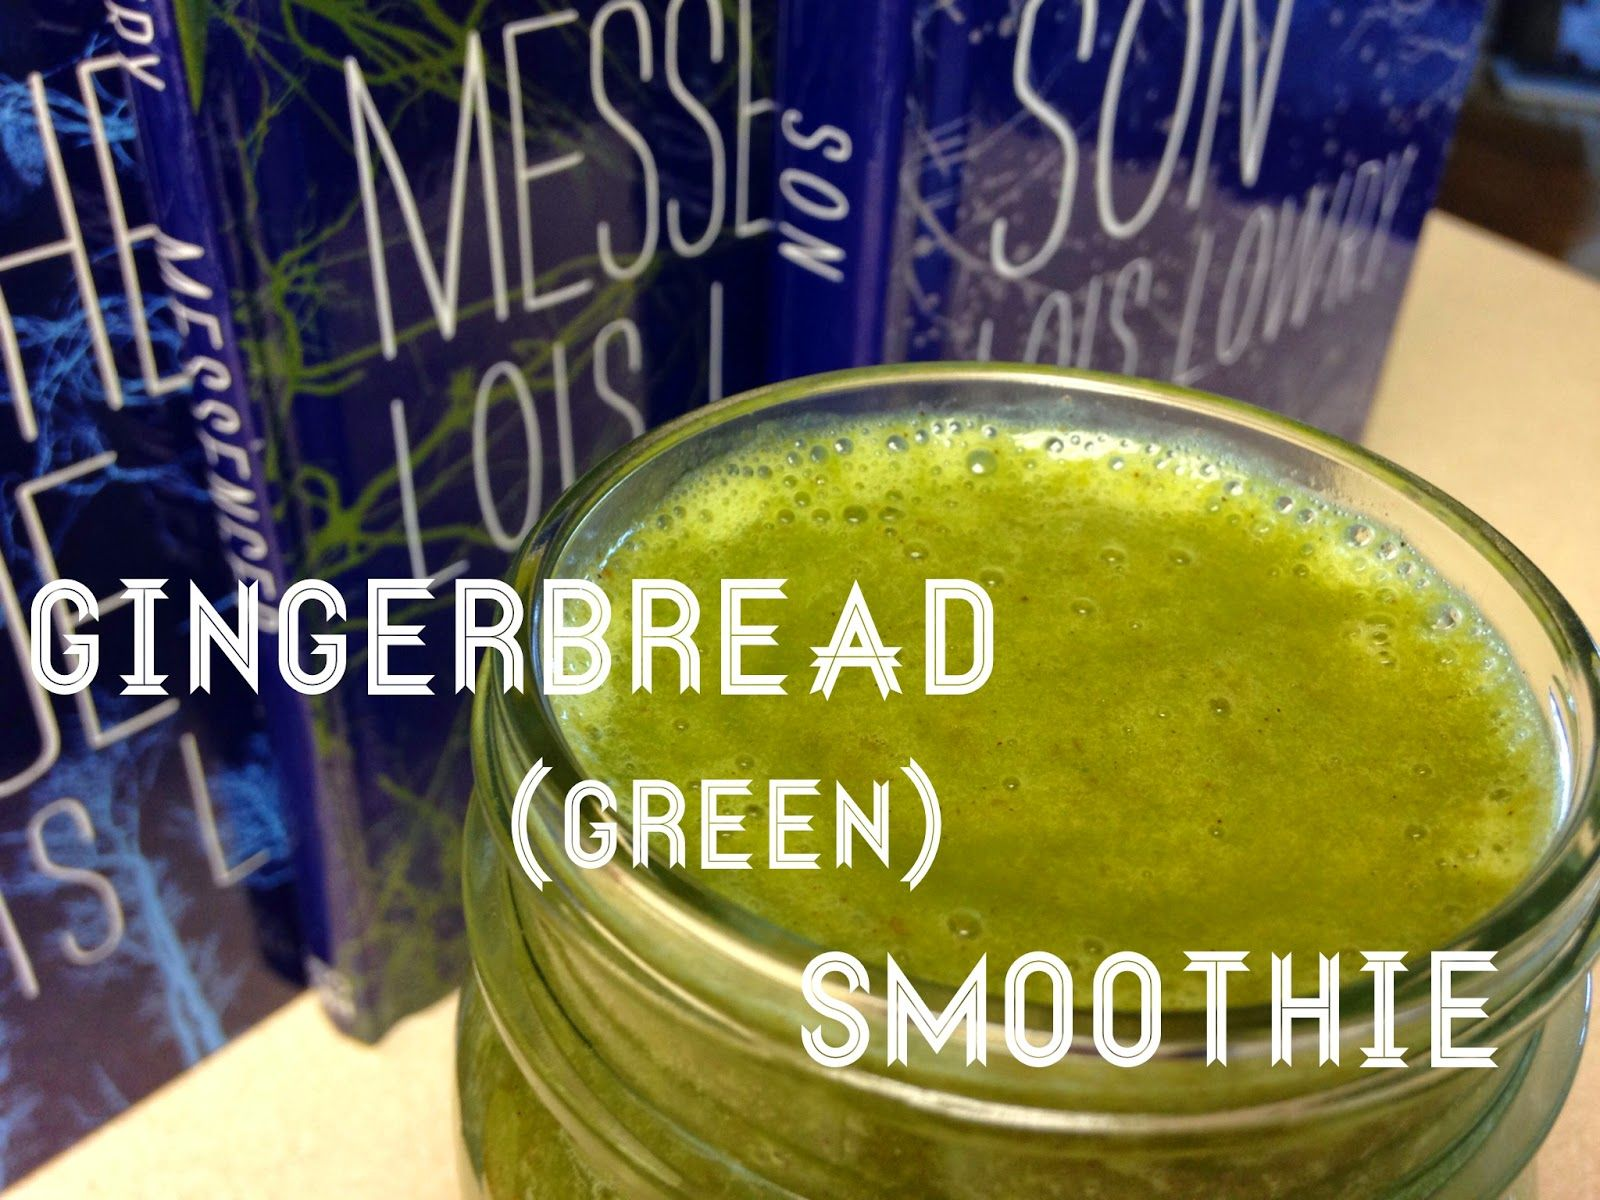 Gingerbread (Green) Smoothie